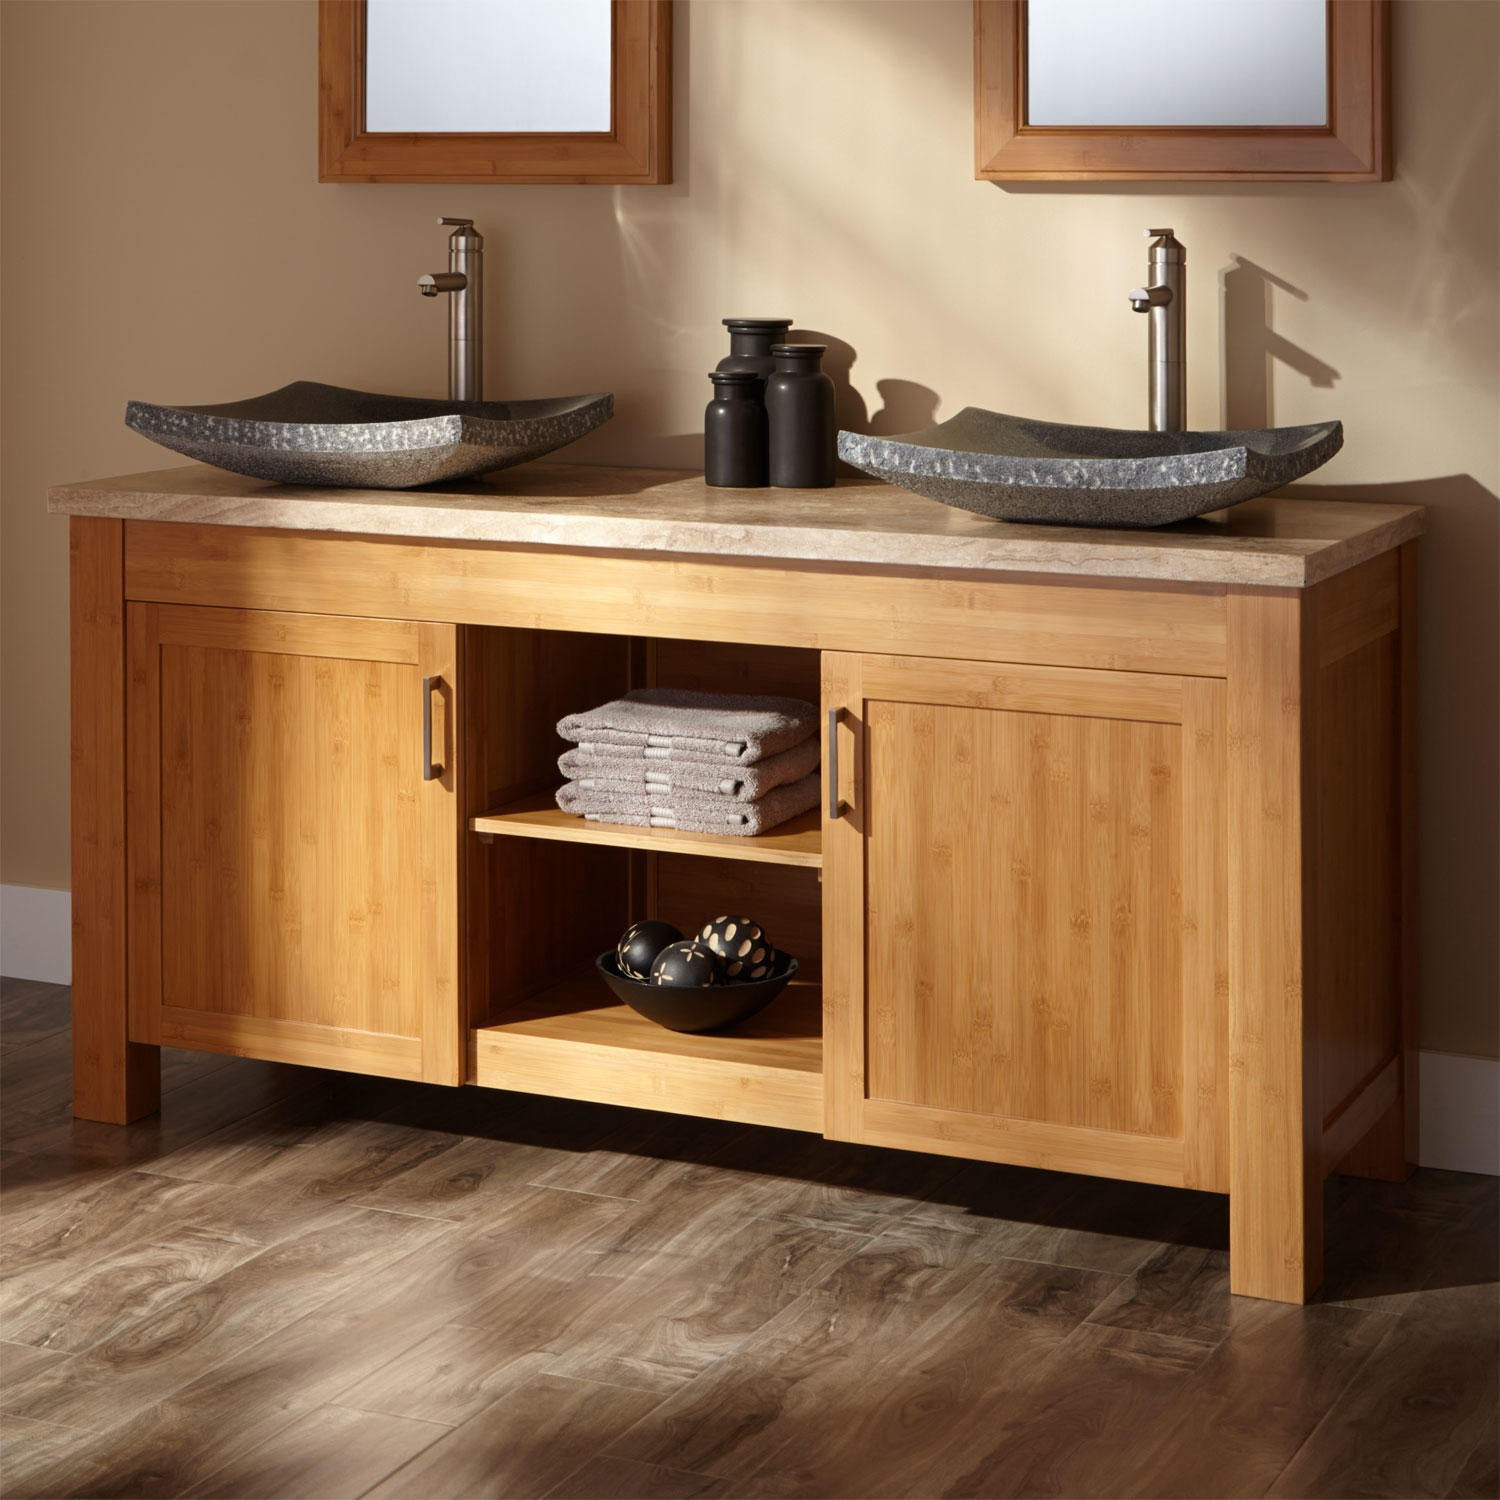 Image of: 60 Inch Double Sink Vanity Top